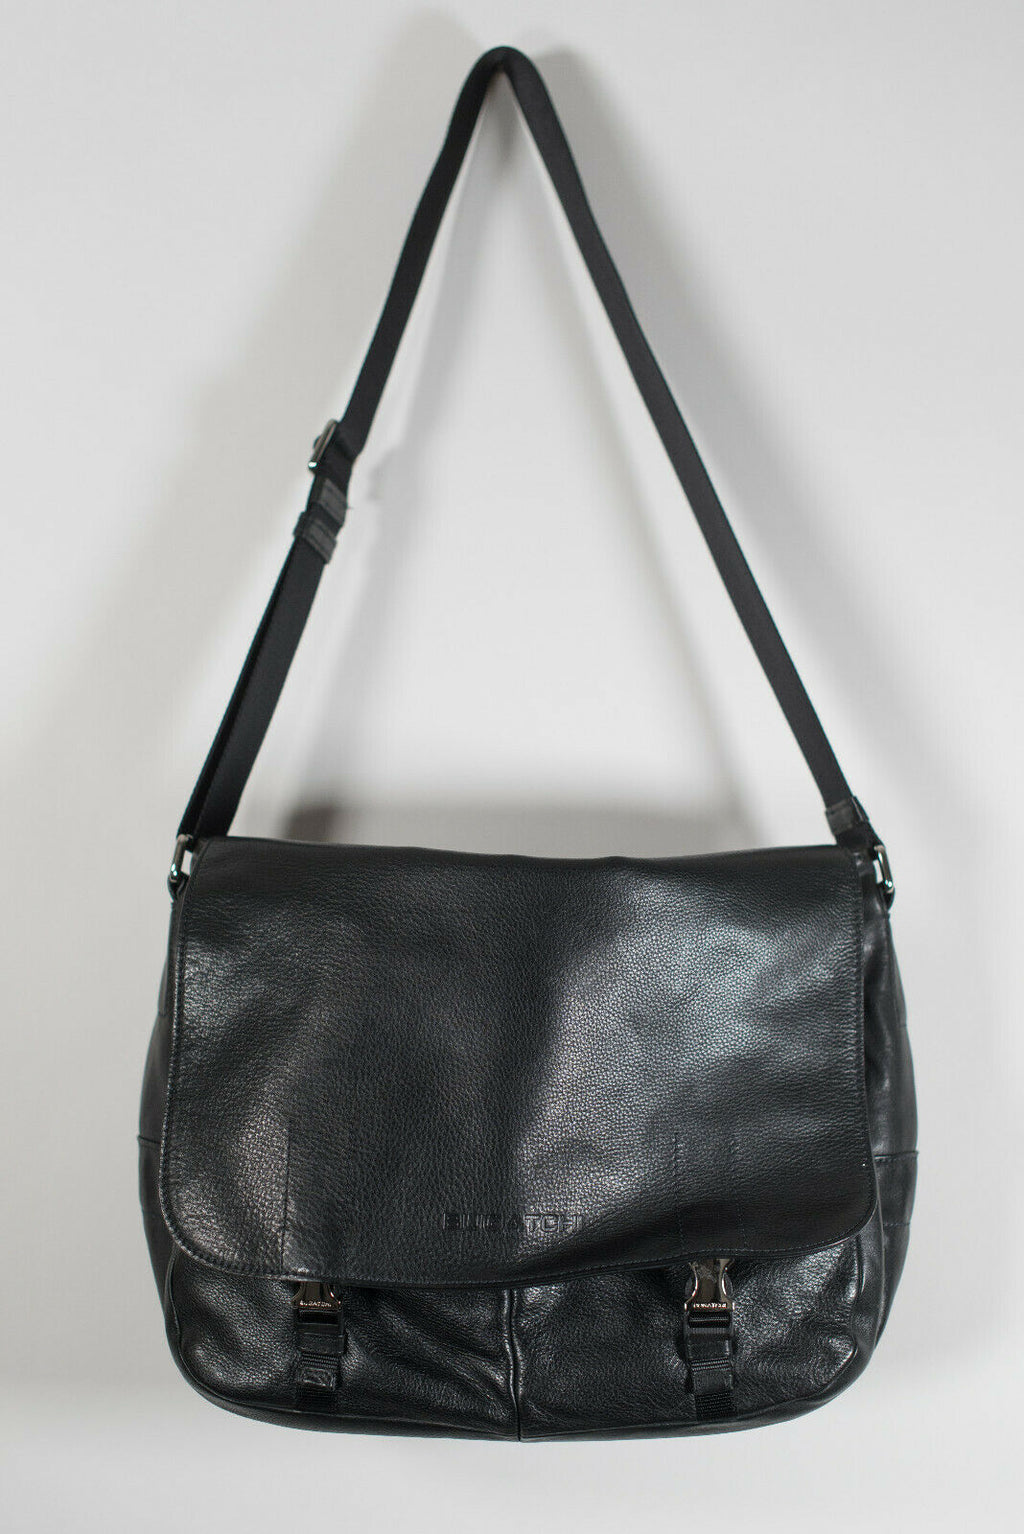 Bugatchi Large Black Messenger Bag Pebble Leather Laptop Zipper Pockets $495